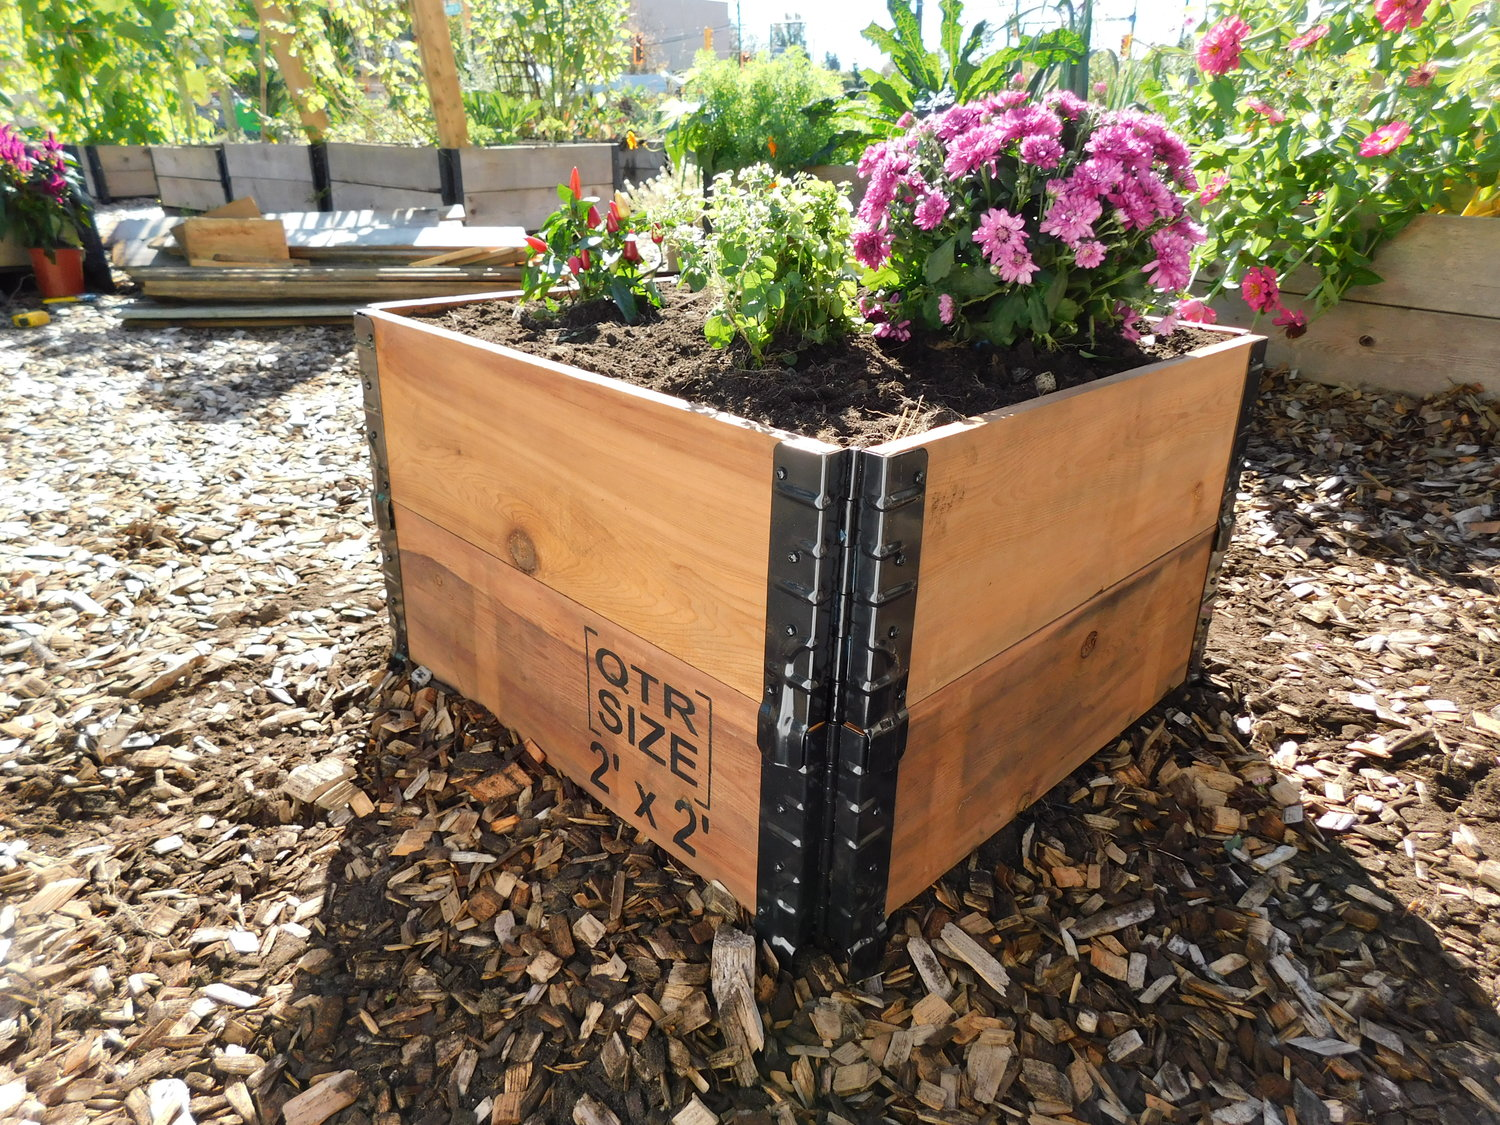 Spring is coming - Get your raised garden beds! — Shifting Growth\'s ...